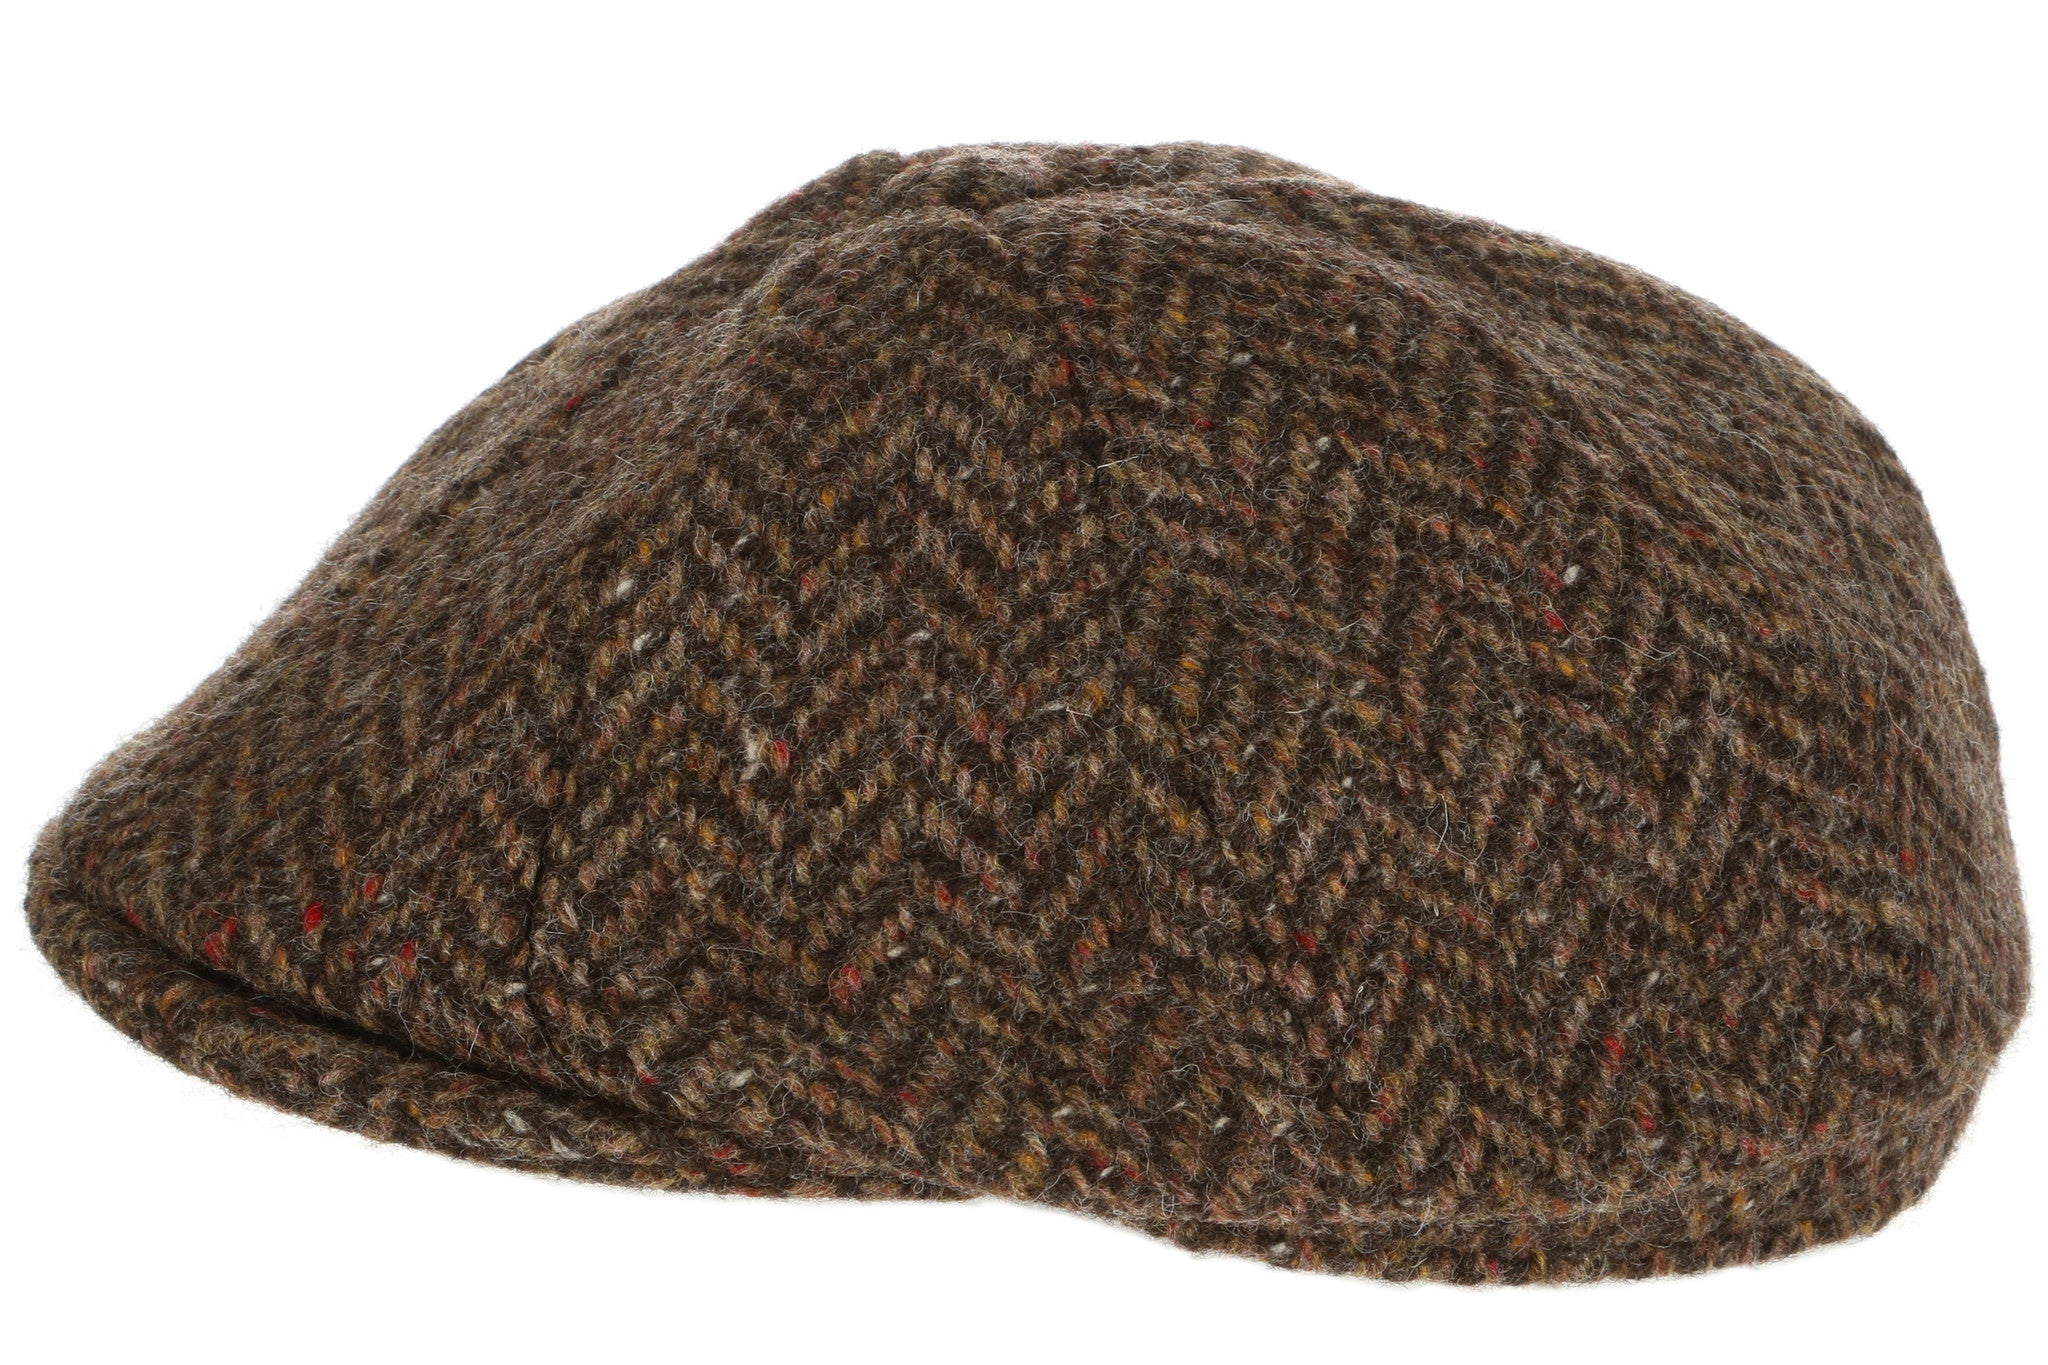 5502c17e09679 Hanna Hats Newsboy Cap Tweed Brown Herringbone ...